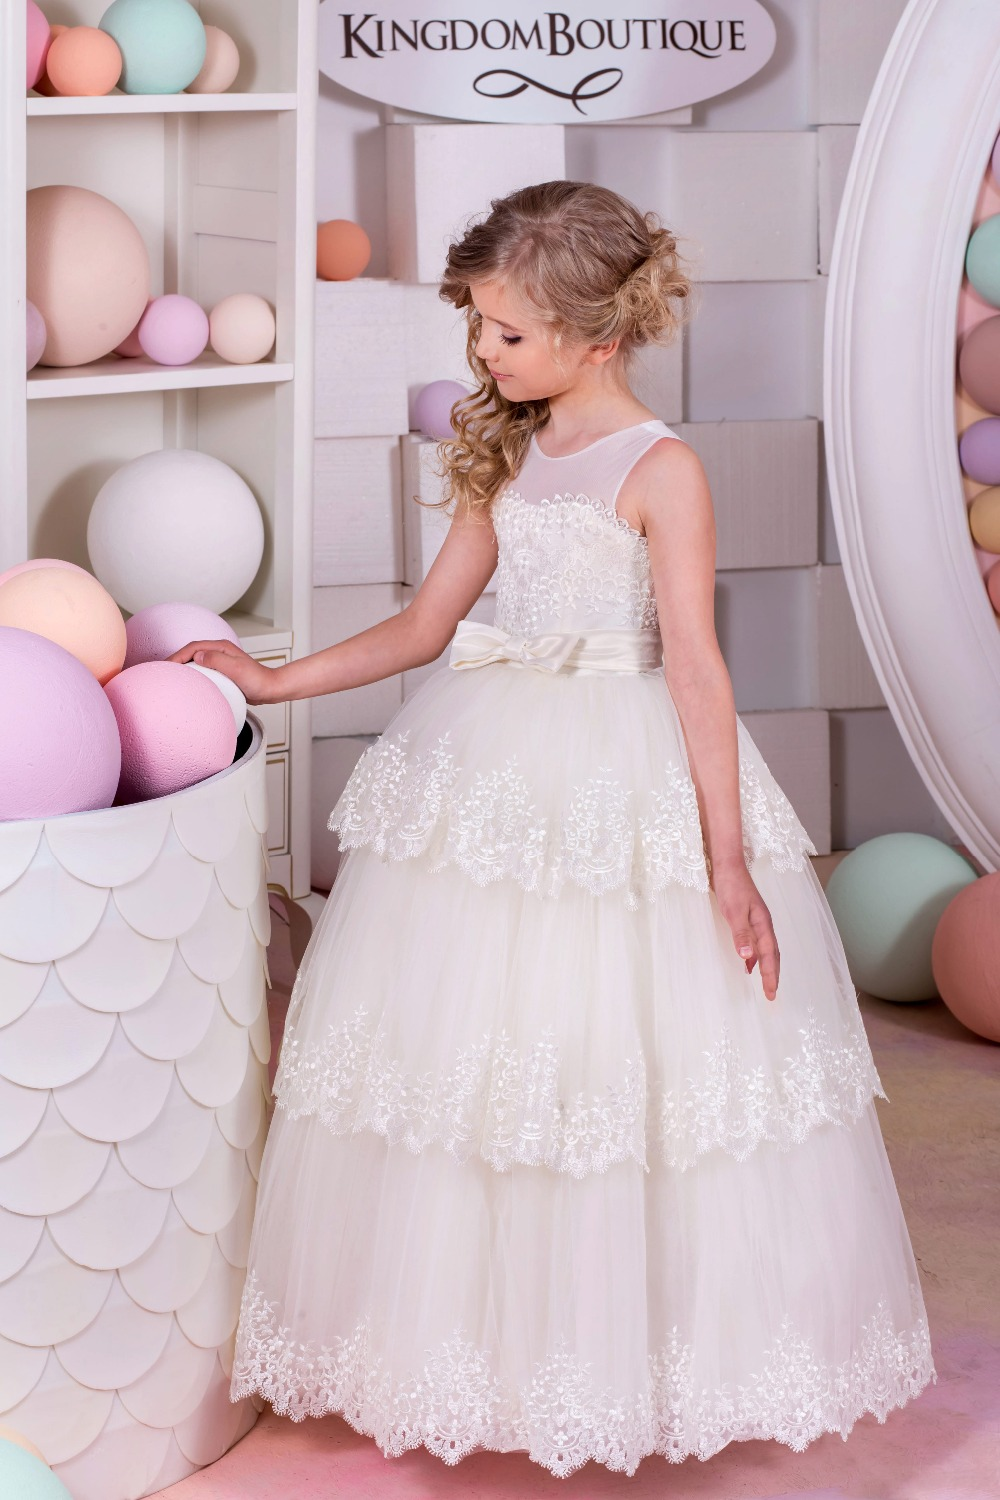 2017 New Puffy Lace Flower Girl Dress Weddings Sleeveless Ball Gown Kids Party Communion Pageant Bow Gown Vestidos 0-12 Year old 2017 puffy lace flower girl dress for weddings ball gown girl party communion pageant gown infant tutu princess vestidos d4